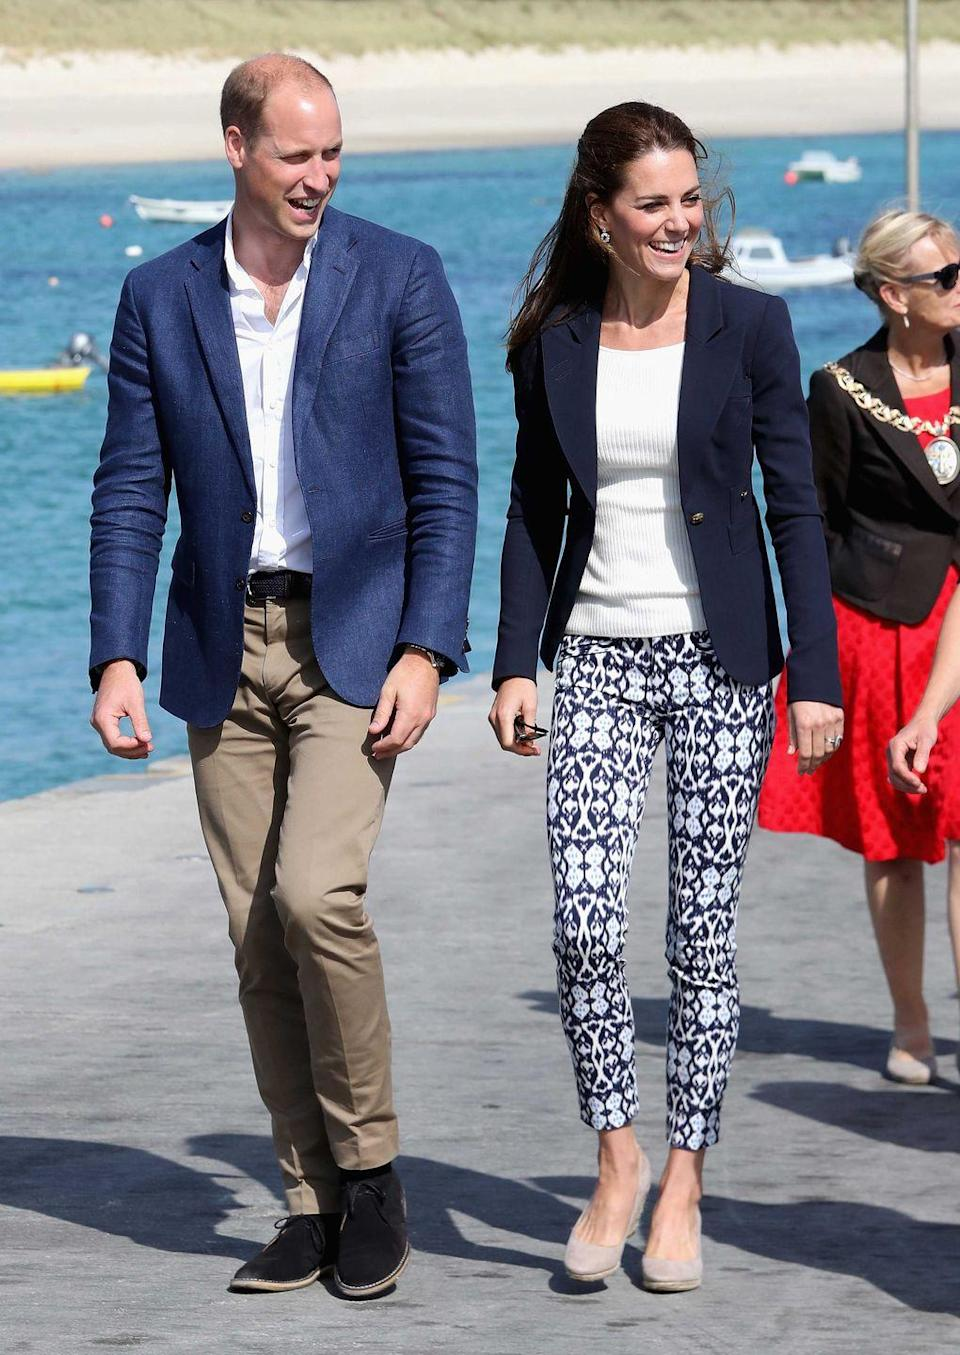 """<p>Kate's pants are from the <a href=""""https://go.redirectingat.com?id=74968X1596630&url=http%3A%2F%2Fwww.gap.com%2Fbrowse%2Fproduct.do%3Fpid%3D130046282%26vid%3D1%26locale%3Den_US%26kwid%3D1%26sem%3Dfalse%26sdkw%3Dbi-stretch-skinny-ankle-pants-P130046%26sdReferer%3Dhttps%253A%252F%252Fwww.google.com%252F&sref=https%3A%2F%2Fwww.townandcountrymag.com%2Fstyle%2Ffashion-trends%2Fnews%2Fg1633%2Fkate-middleton-fashion%2F"""" rel=""""nofollow noopener"""" target=""""_blank"""" data-ylk=""""slk:Gap"""" class=""""link rapid-noclick-resp"""">Gap</a>. Yes, you read that right. (Prince William and the Duchess were visiting the Island of St Martin's in England's Scilly Isles.)</p>"""